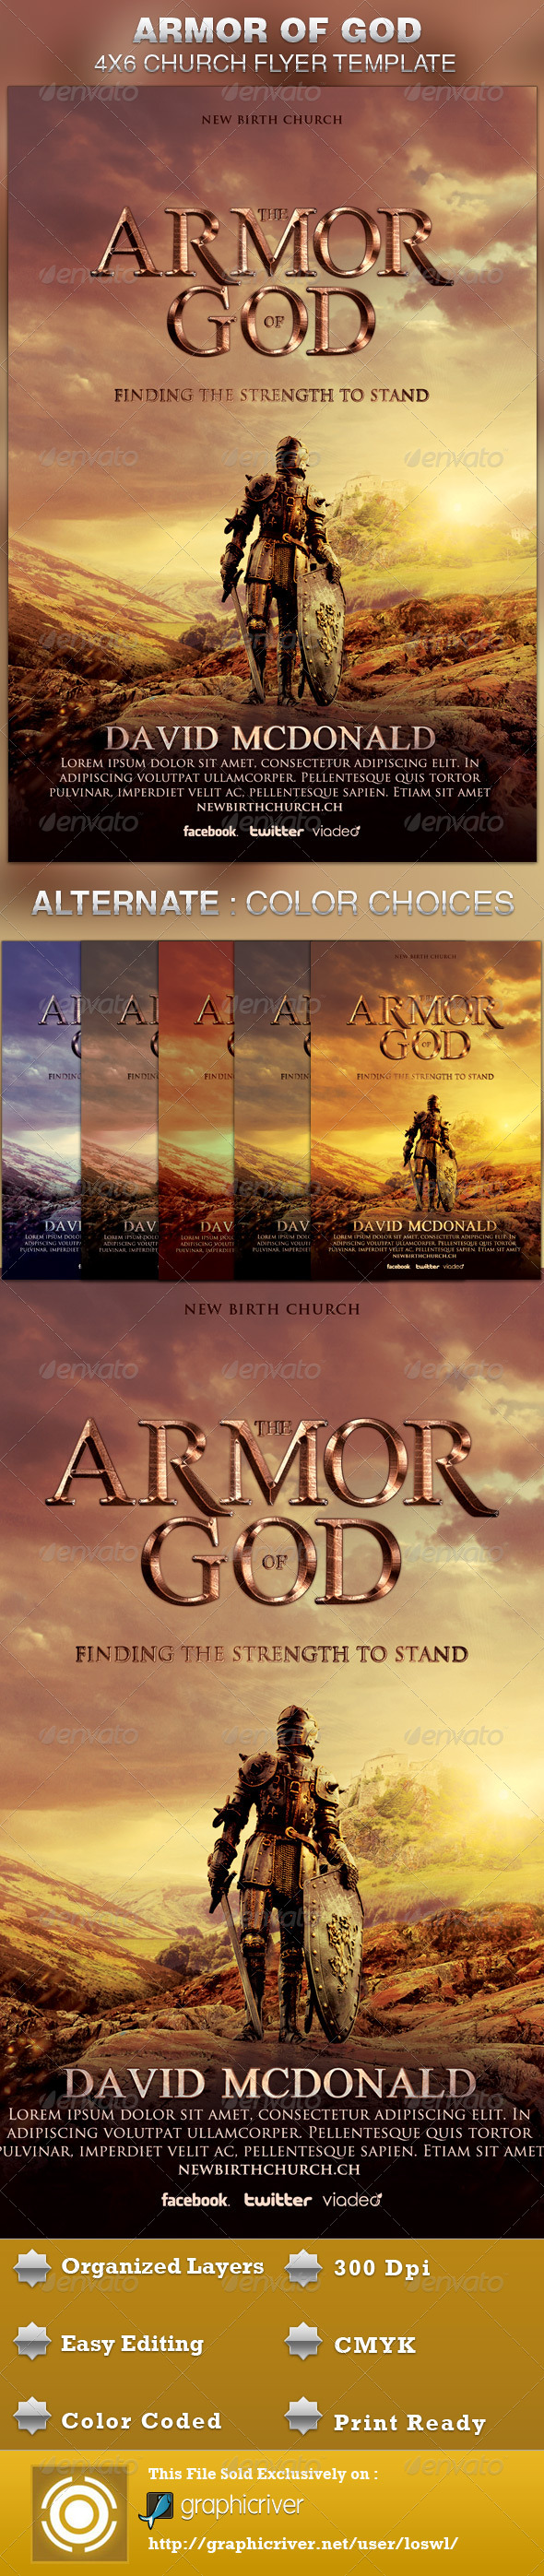 GraphicRiver Armor of God Church Flyer Template 5092943